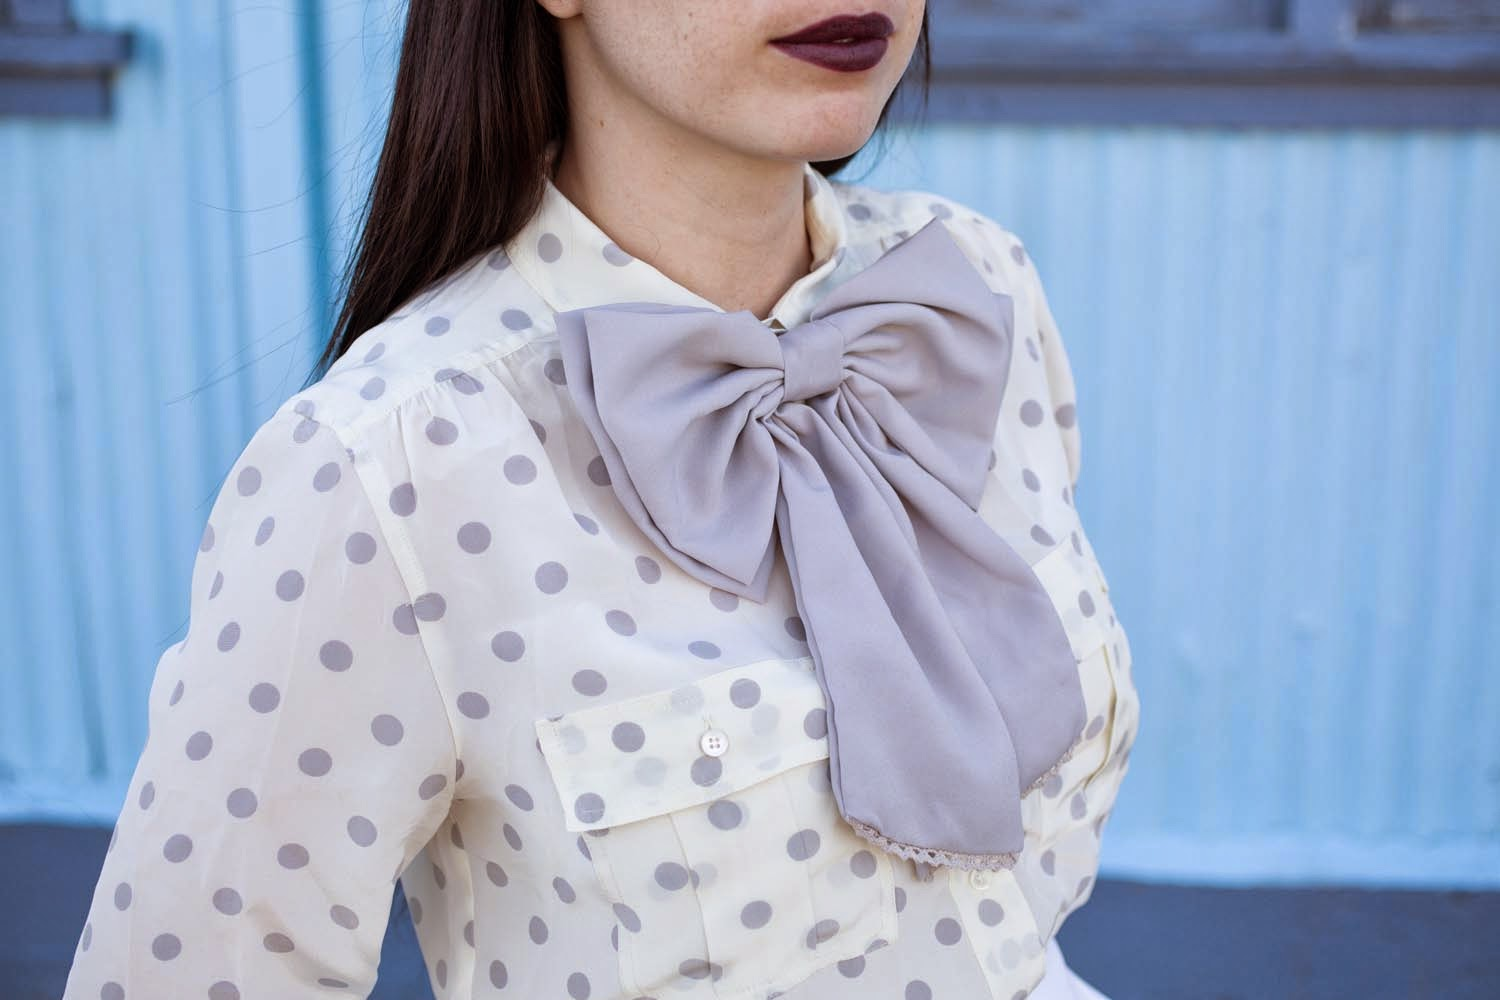 bowtie and polka dots